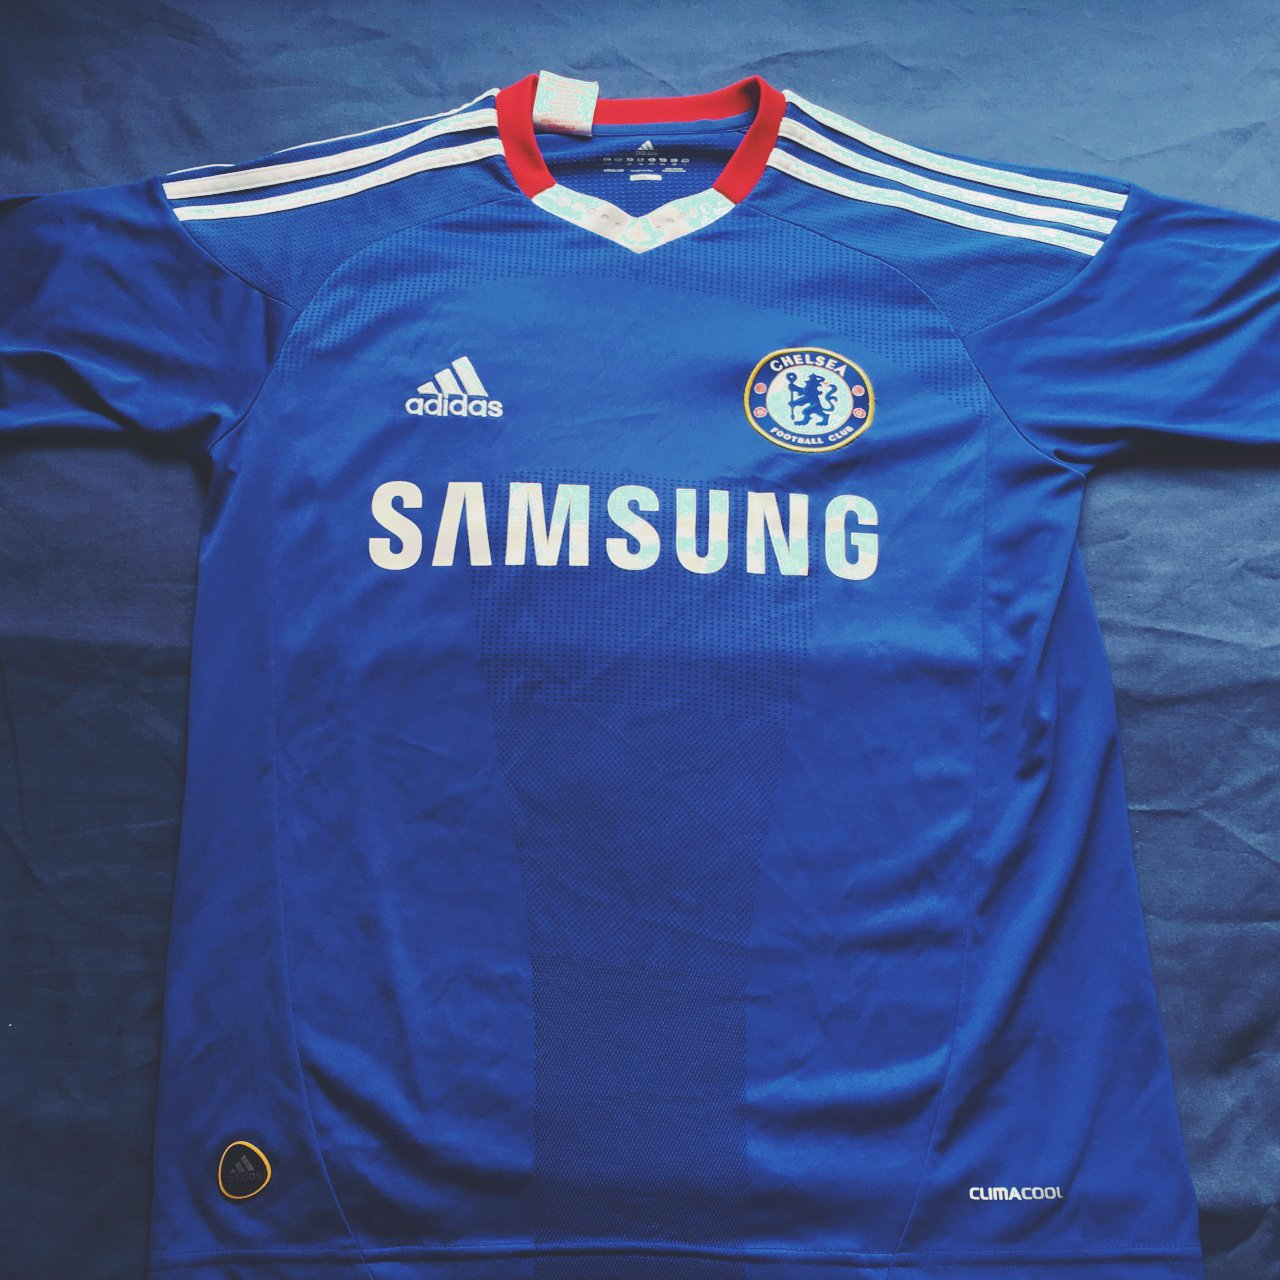 Chelsea FC 2010-2011 Home Shirt    No name or number printed - Depop a82d95863